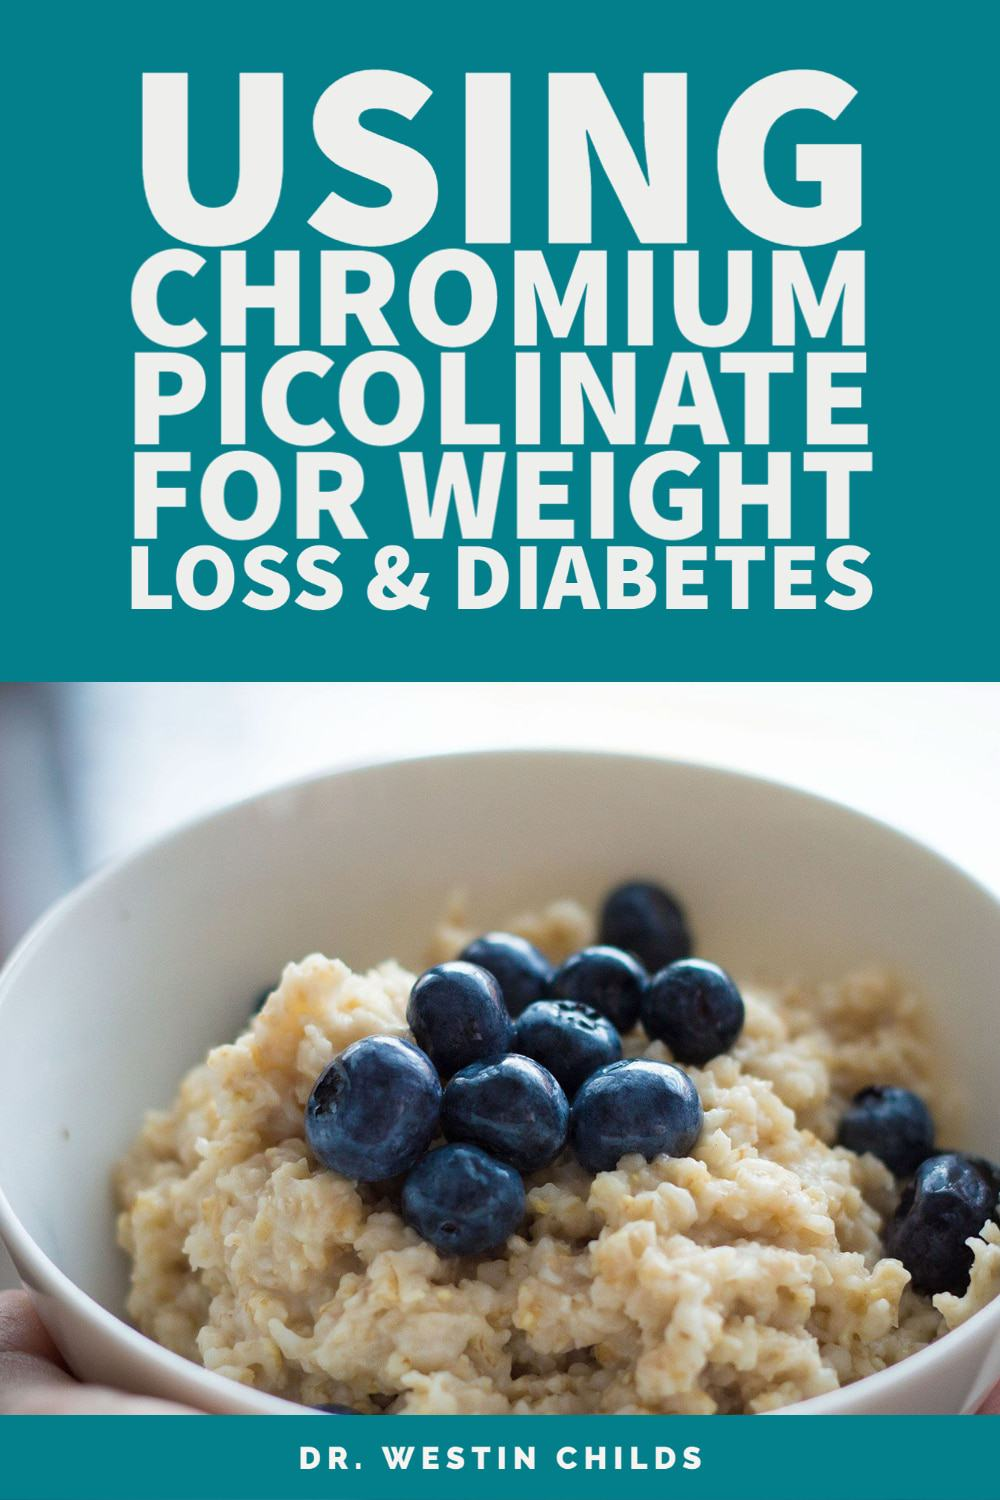 using chromium picolinate for weight loss and diabetes